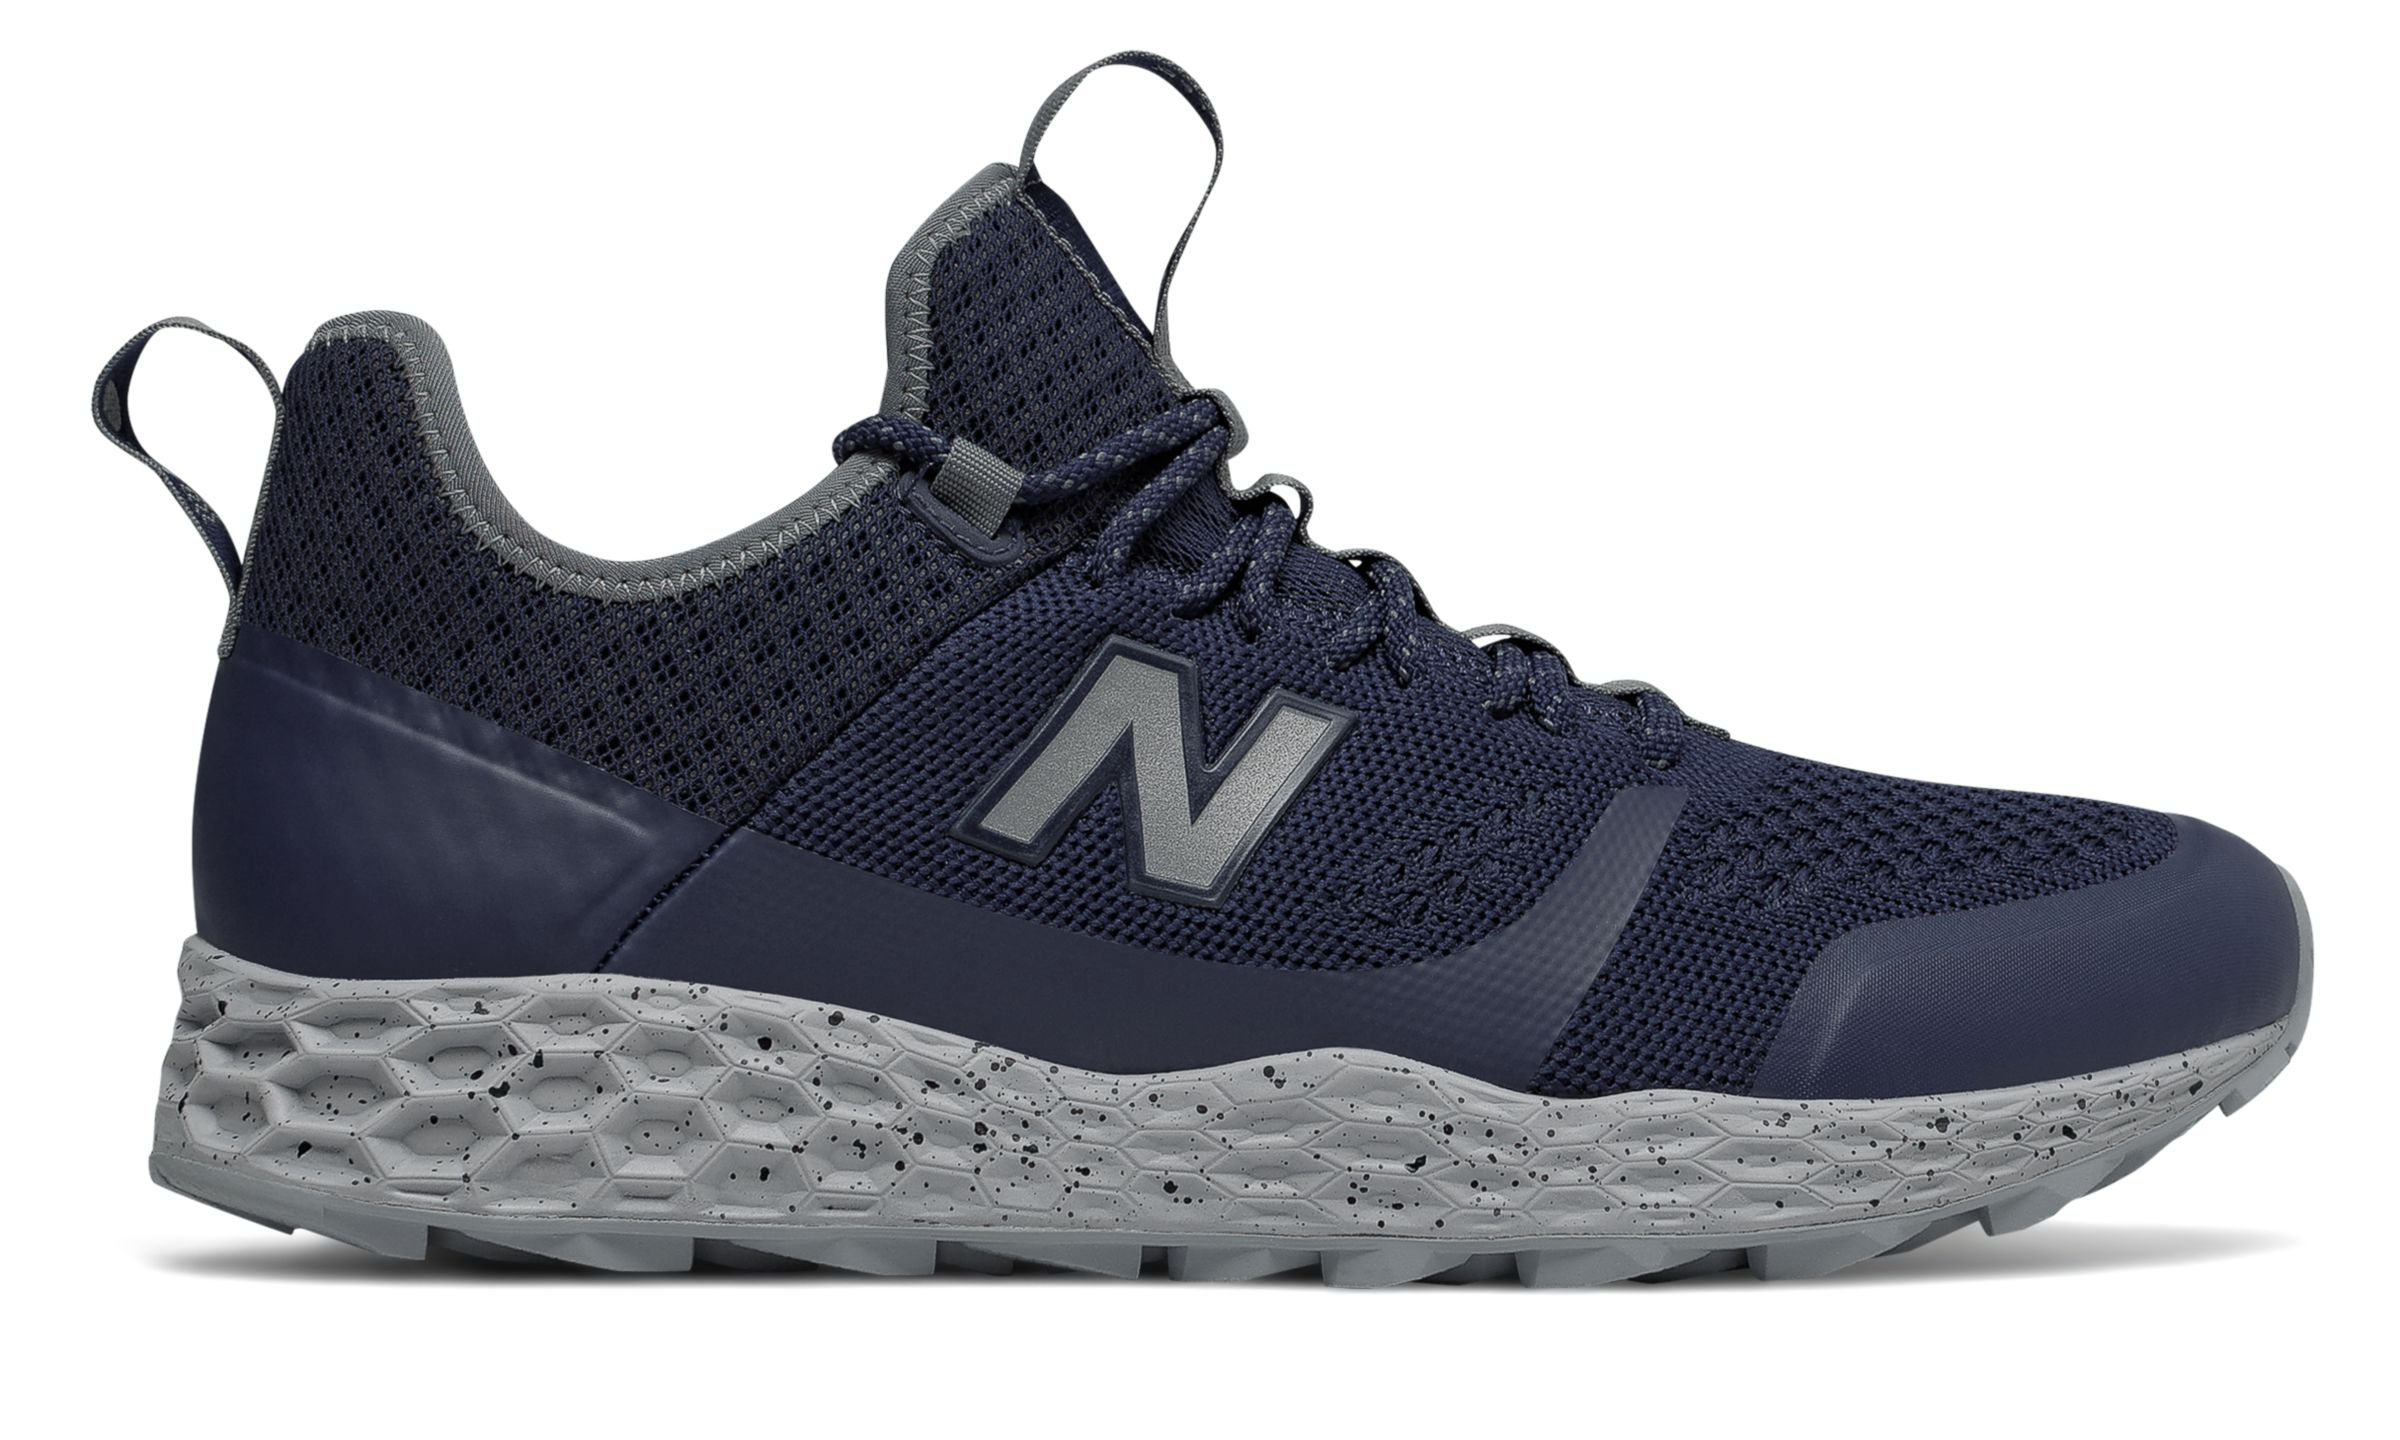 ... running shoes; discount mens new balance shoes multiple styles sizes  widths joes new balance outlet